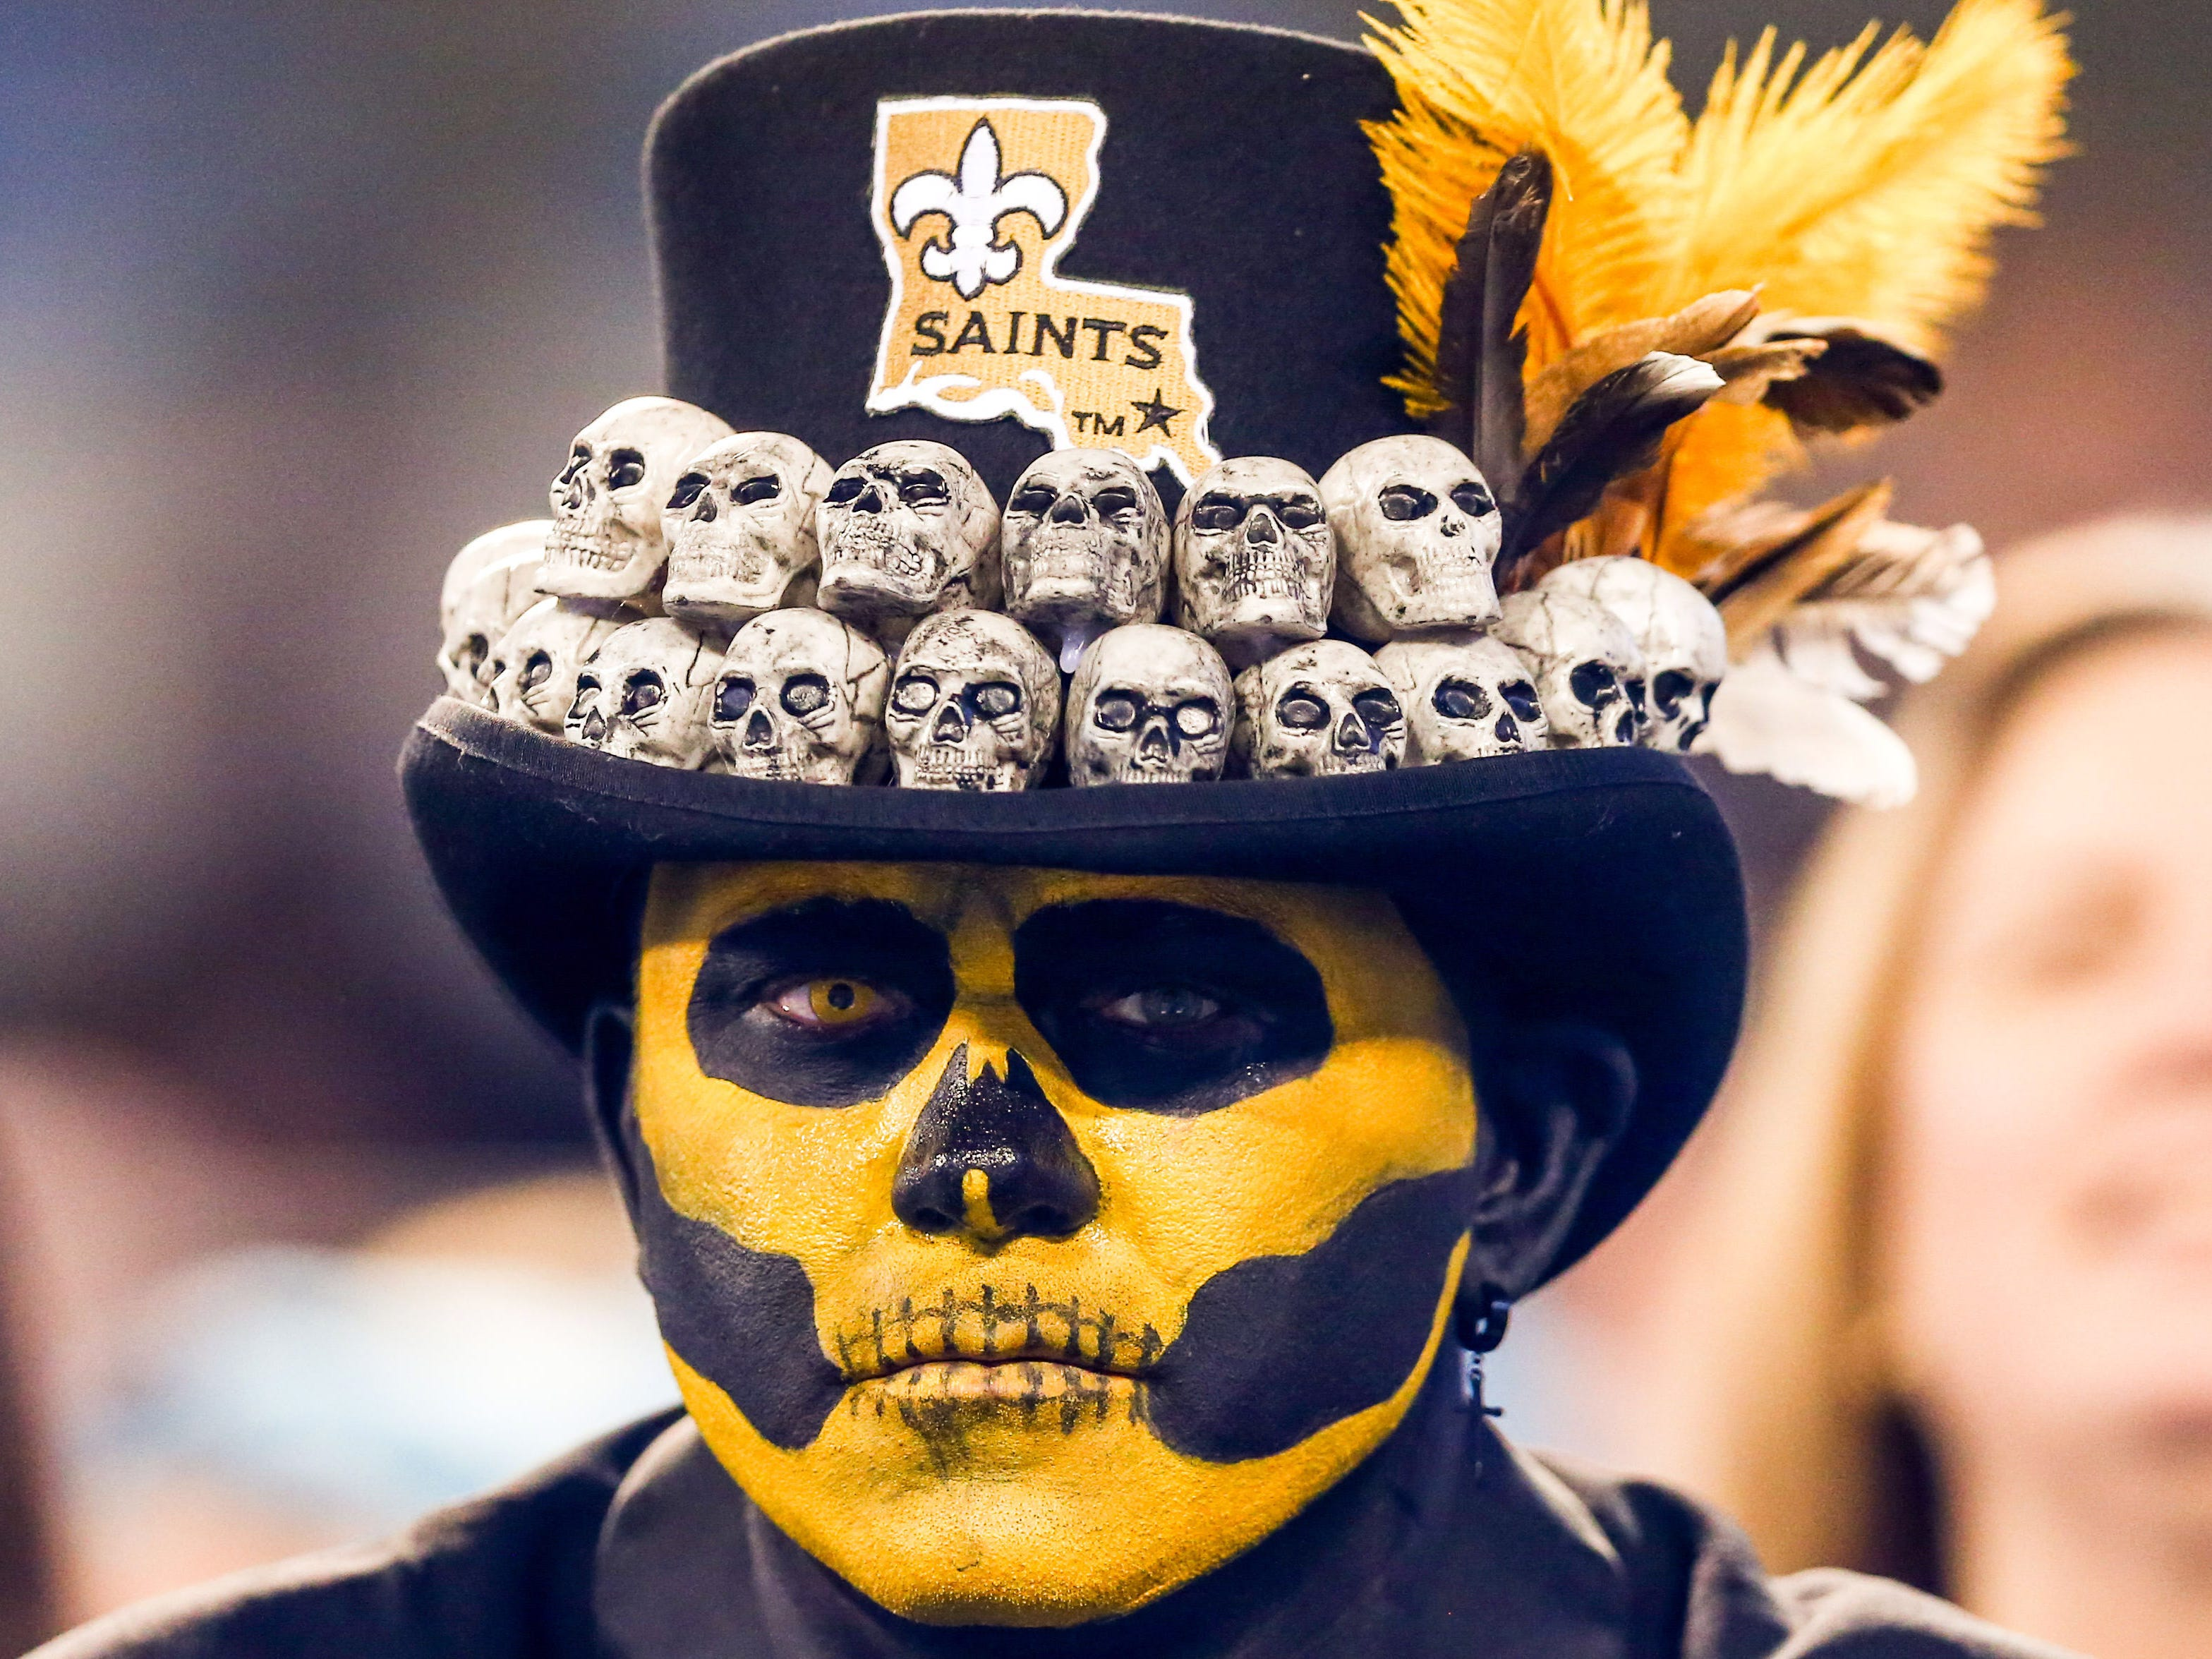 A New Orleans Saints fan looks on during the game against the Carolina Panthers at Bank of America Stadium.